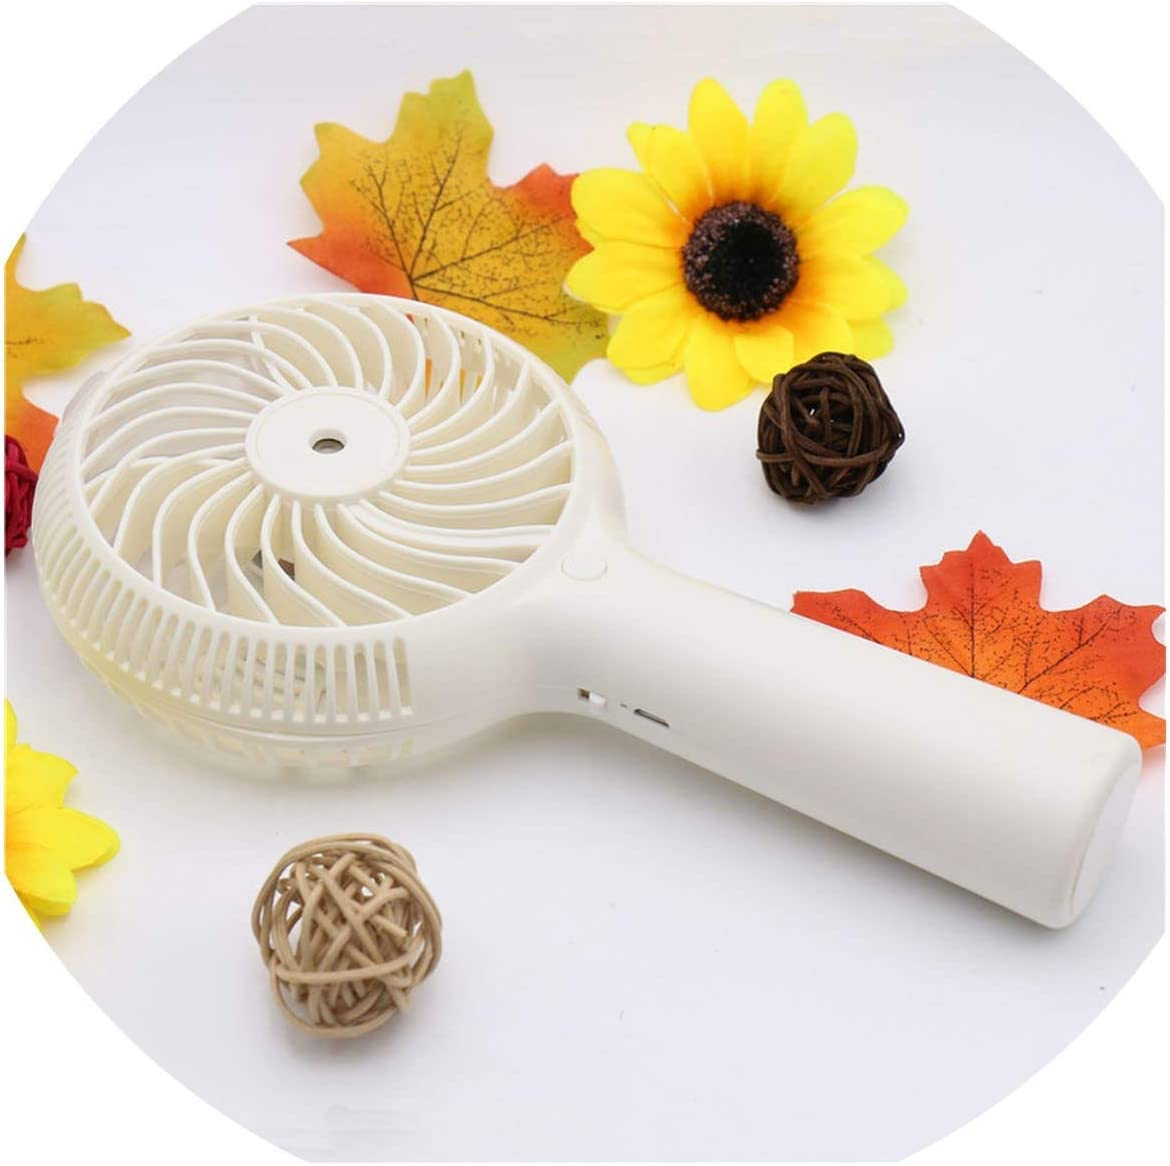 1200mah Mini Water Mist Fan USB Rechargeable Handheld Portable Air Conditioning Fans Outdoor Office,White